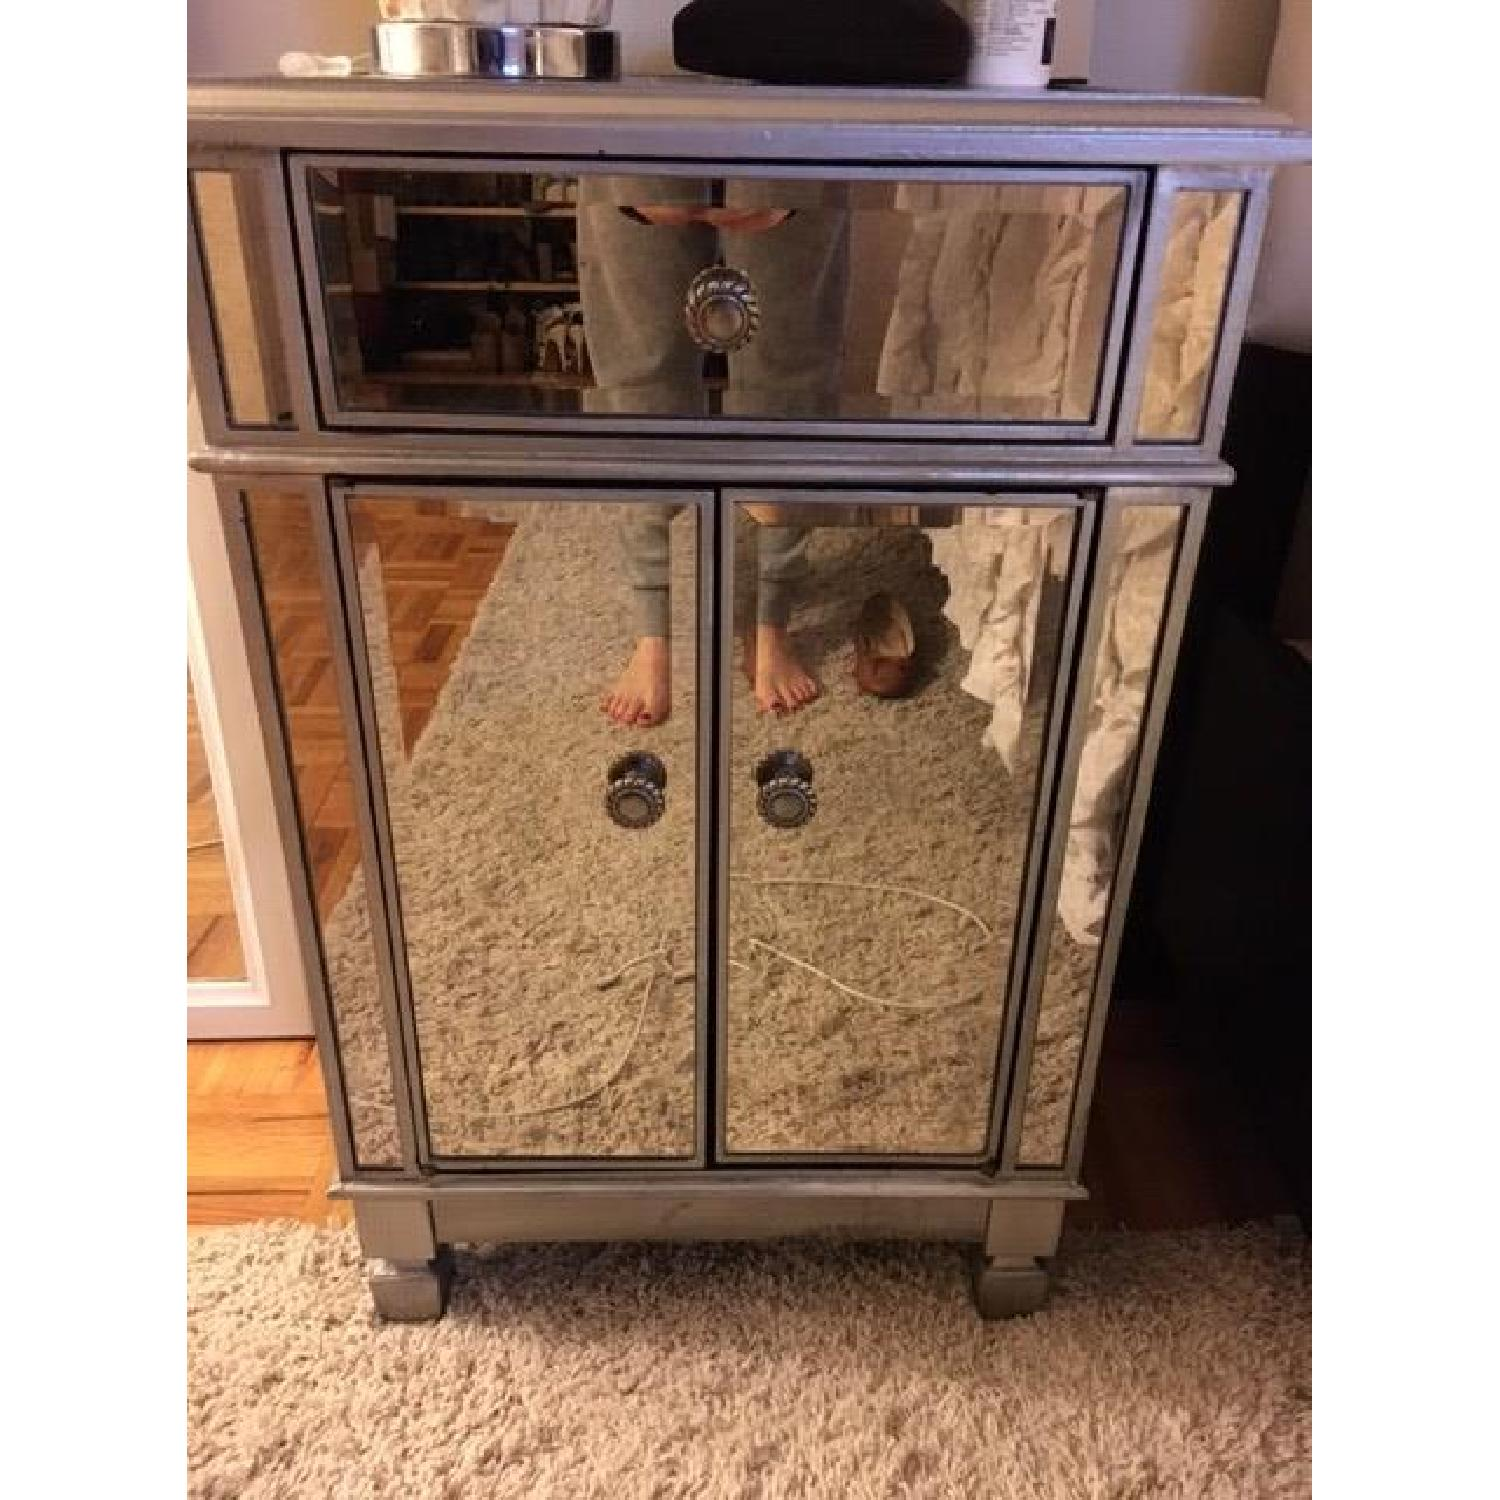 Pier 1 Hayworth Mirrored Bedside Chest in Silver - image-1